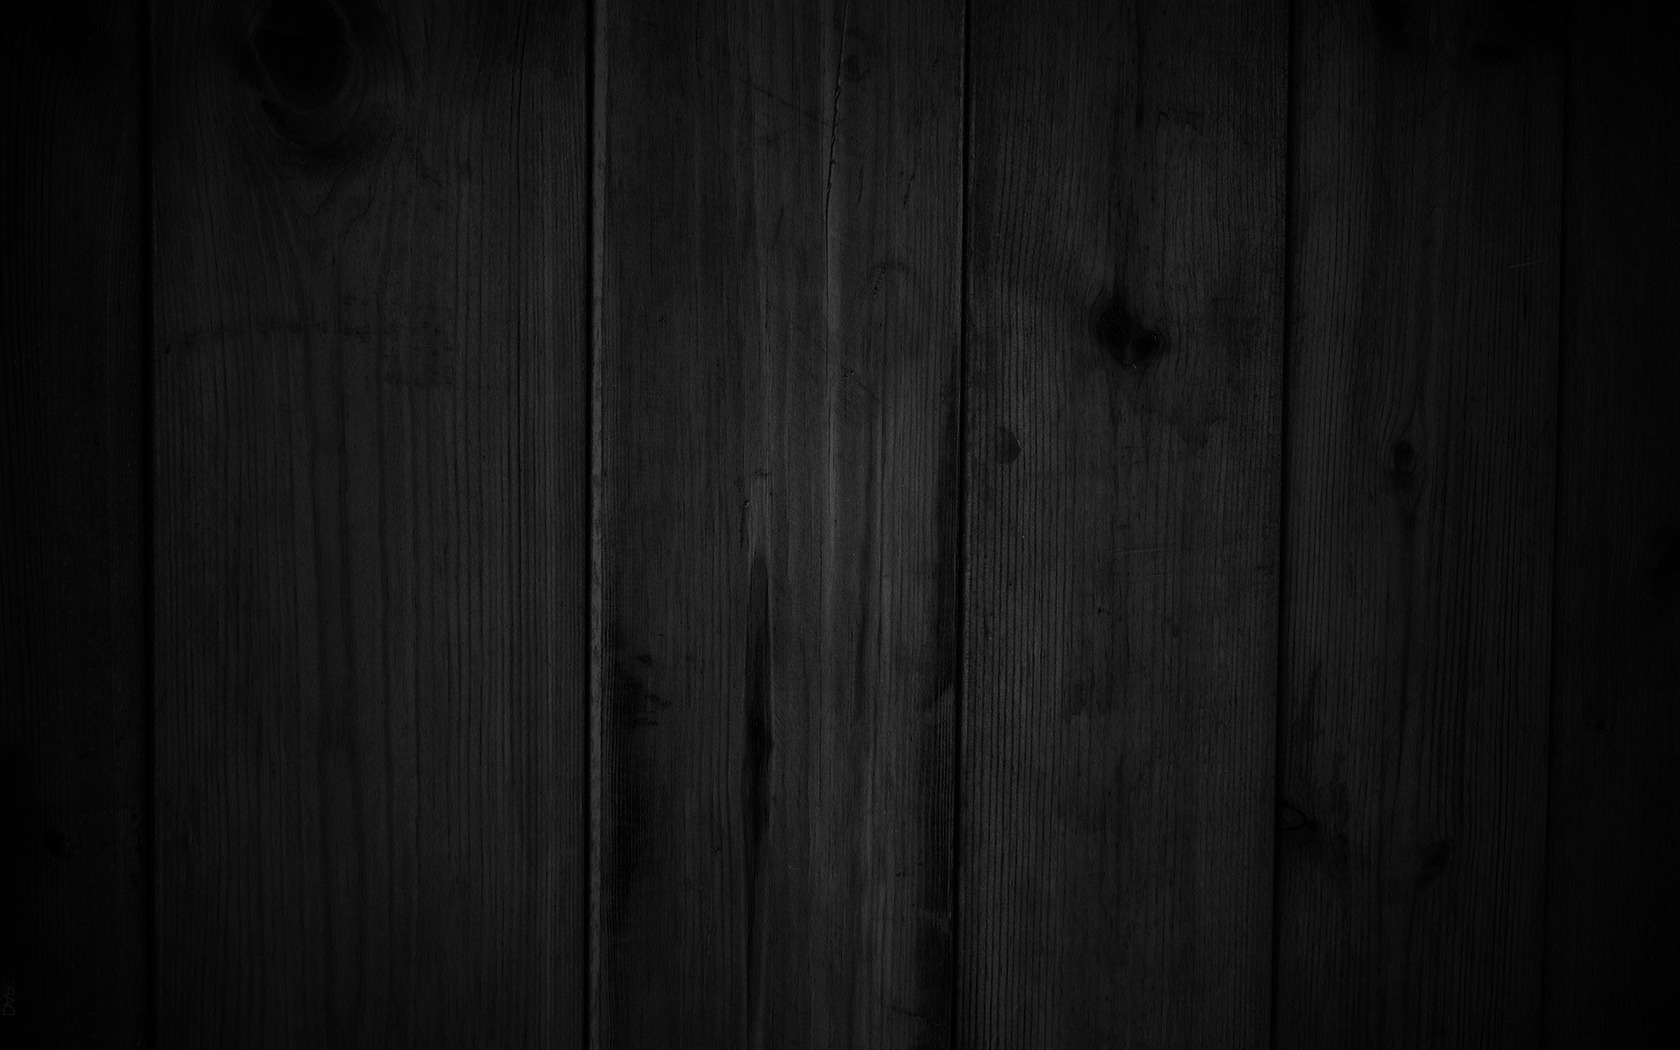 ... Grey wood 1680x1050 wallpaper ...